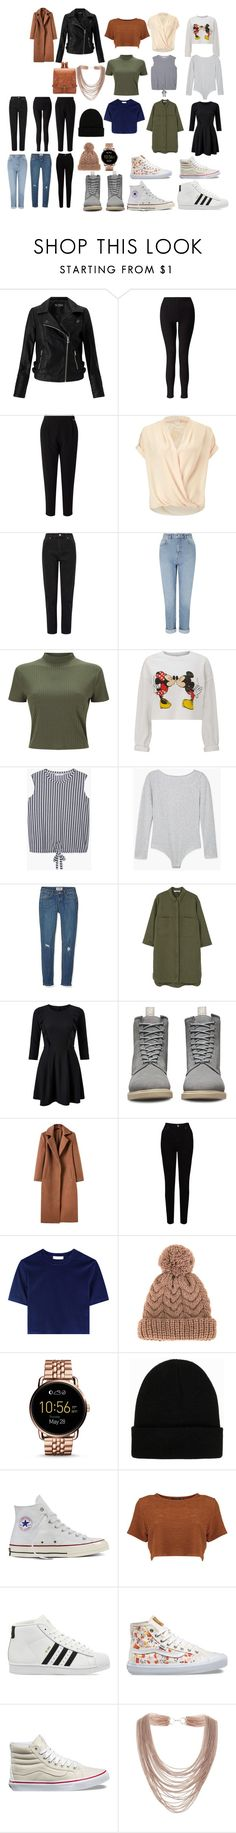 """Untitled #13"" by madambrenoj on Polyvore featuring Miss Selfridge, MANGO, Dr. Martens, EAST, 7II, FOSSIL, NLY Accessories, Converse, adidas and Vans"